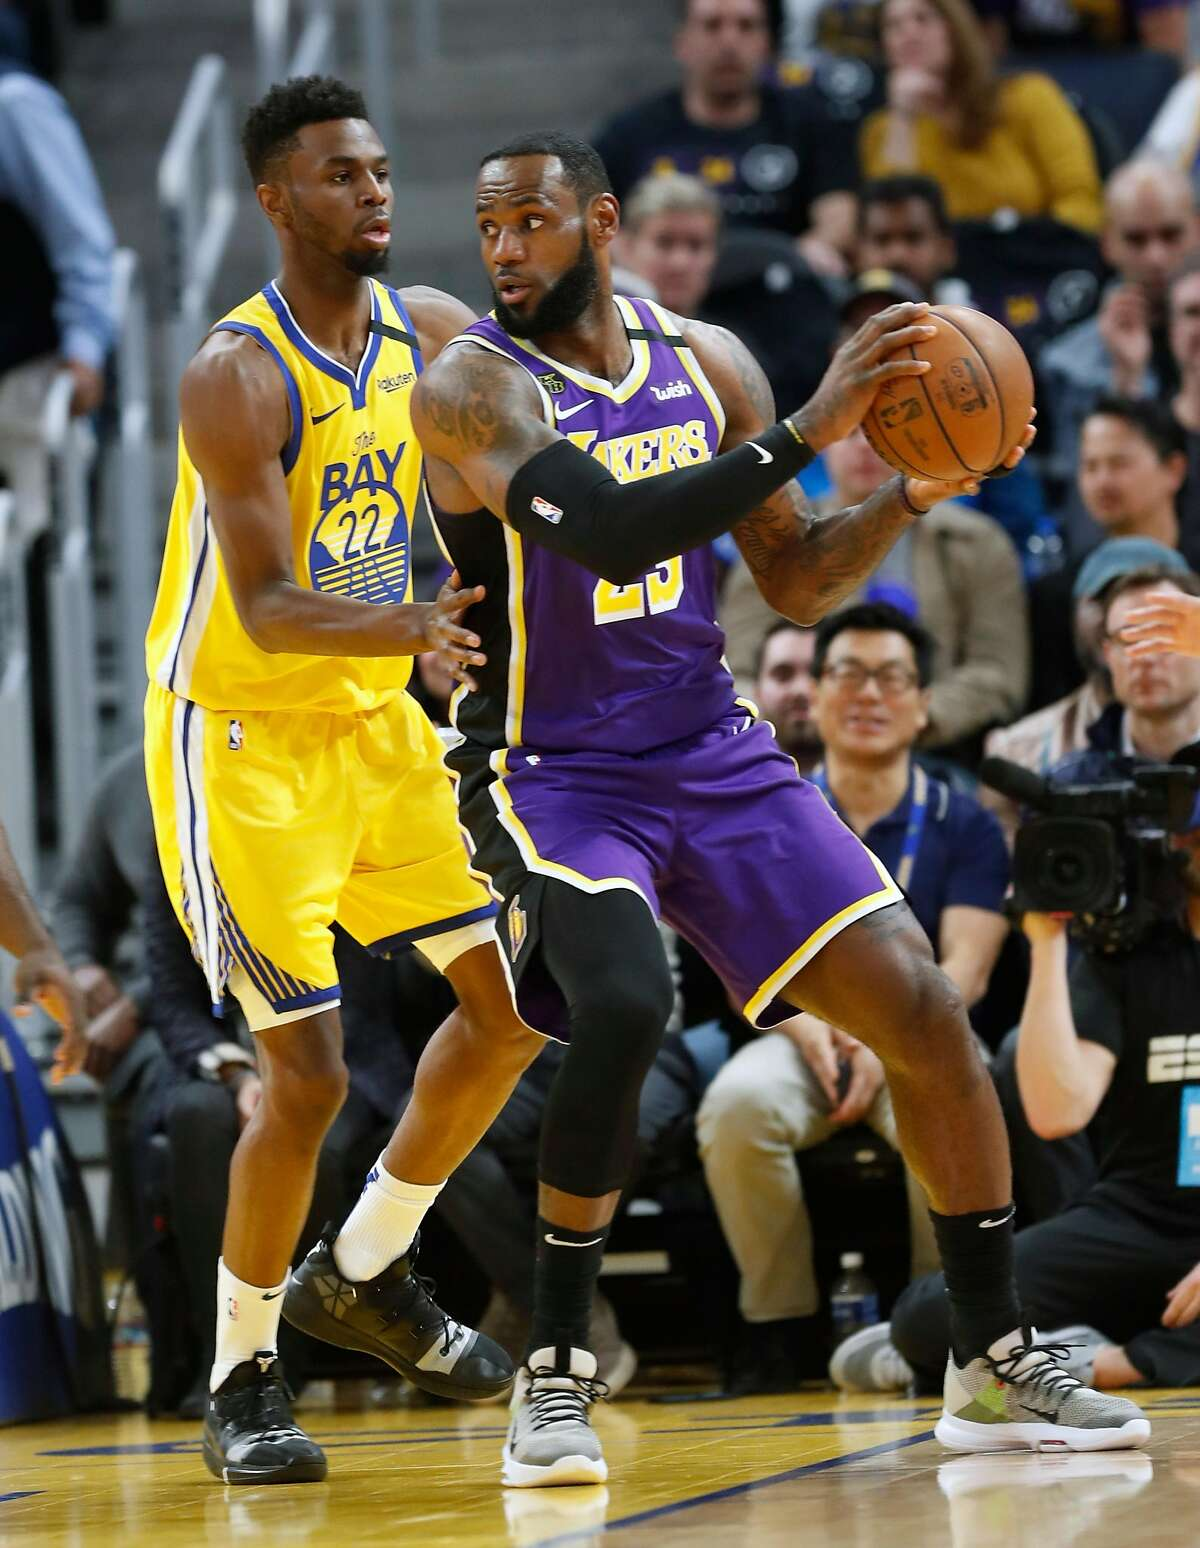 Golden State Warriors' Andrew Wiggins guards Los Angeles Lakers' LeBron James in 1st quarter during NBA game at Chase Center in San Francisco, Calif., on Saturday, February 8, 2020.